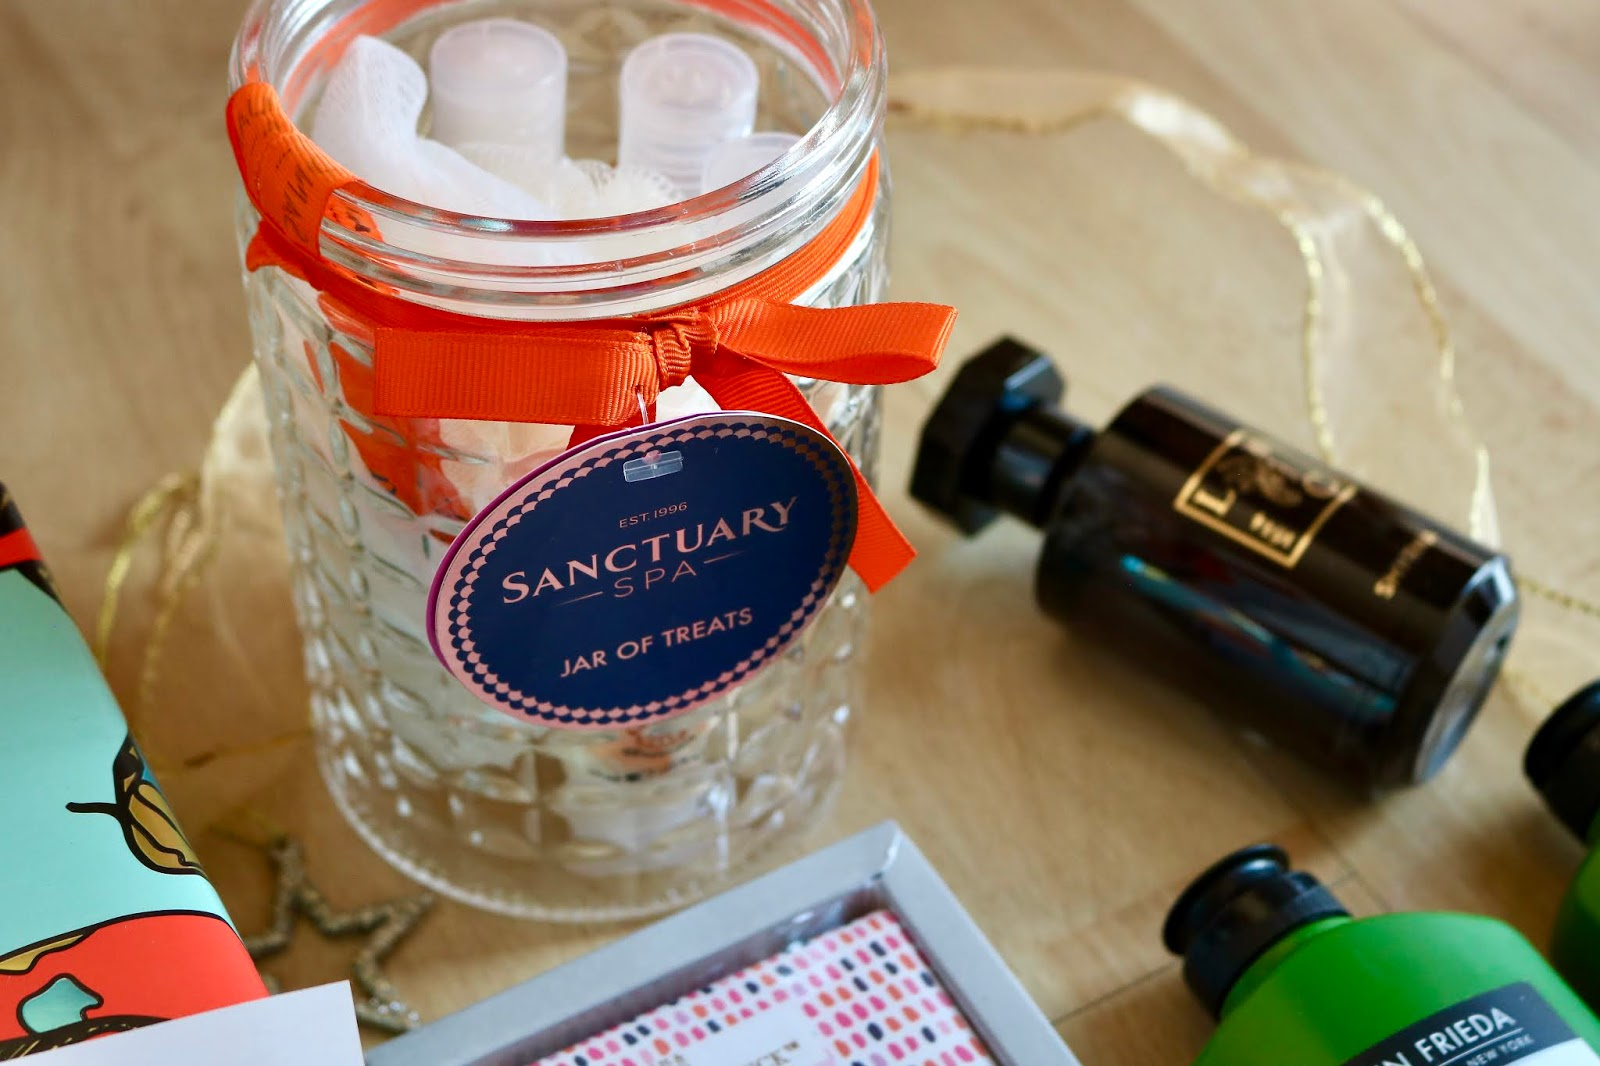 SANCTUARY SPA JAR OF TREATS